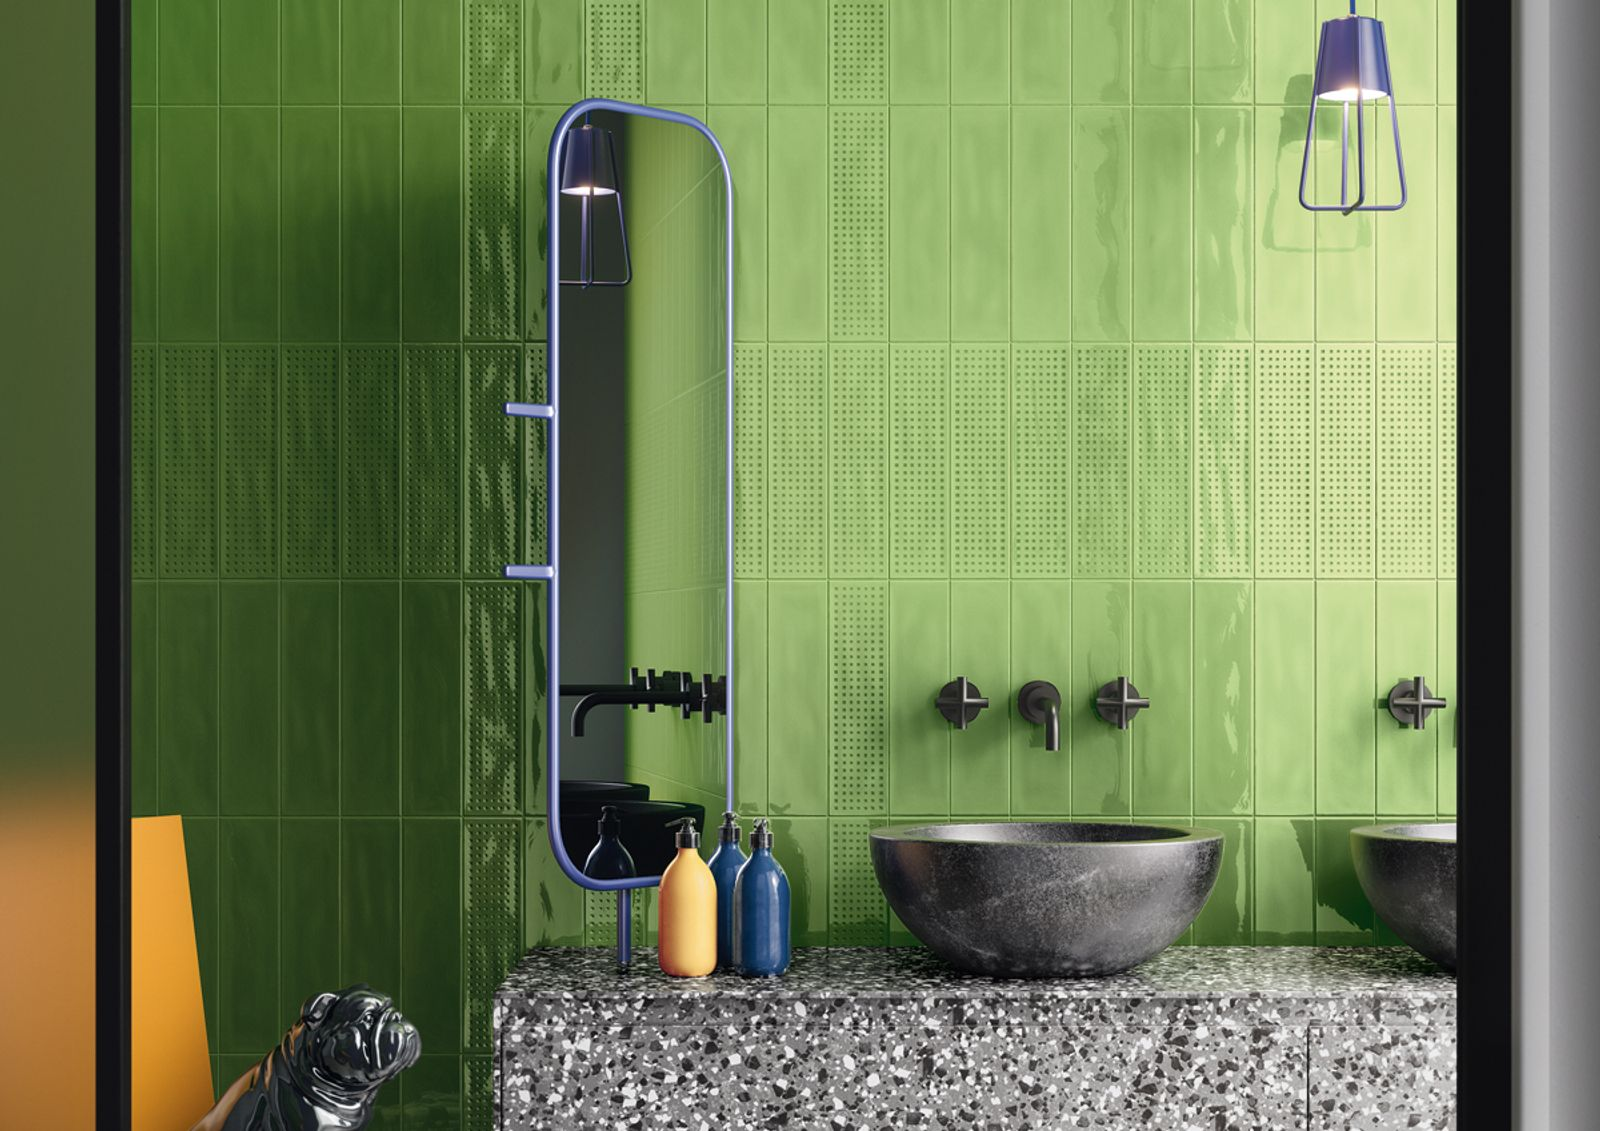 Slash is a double-fired tile generated by a careful study of enamels and a special 'color care' research system that divides modern colours into 'sparkling' and 'still'.There are four 'Sparkling' variants (yellow, apple green, turquoise and red) for a bright and lively style; four neutral and delicate 'Still' shades (greige, ecru, sugar paper and sage); plus a ninth colour, white, that brings the two spirits of the collection together perfectly. - AM SLASH 2 - Imola Ceramica